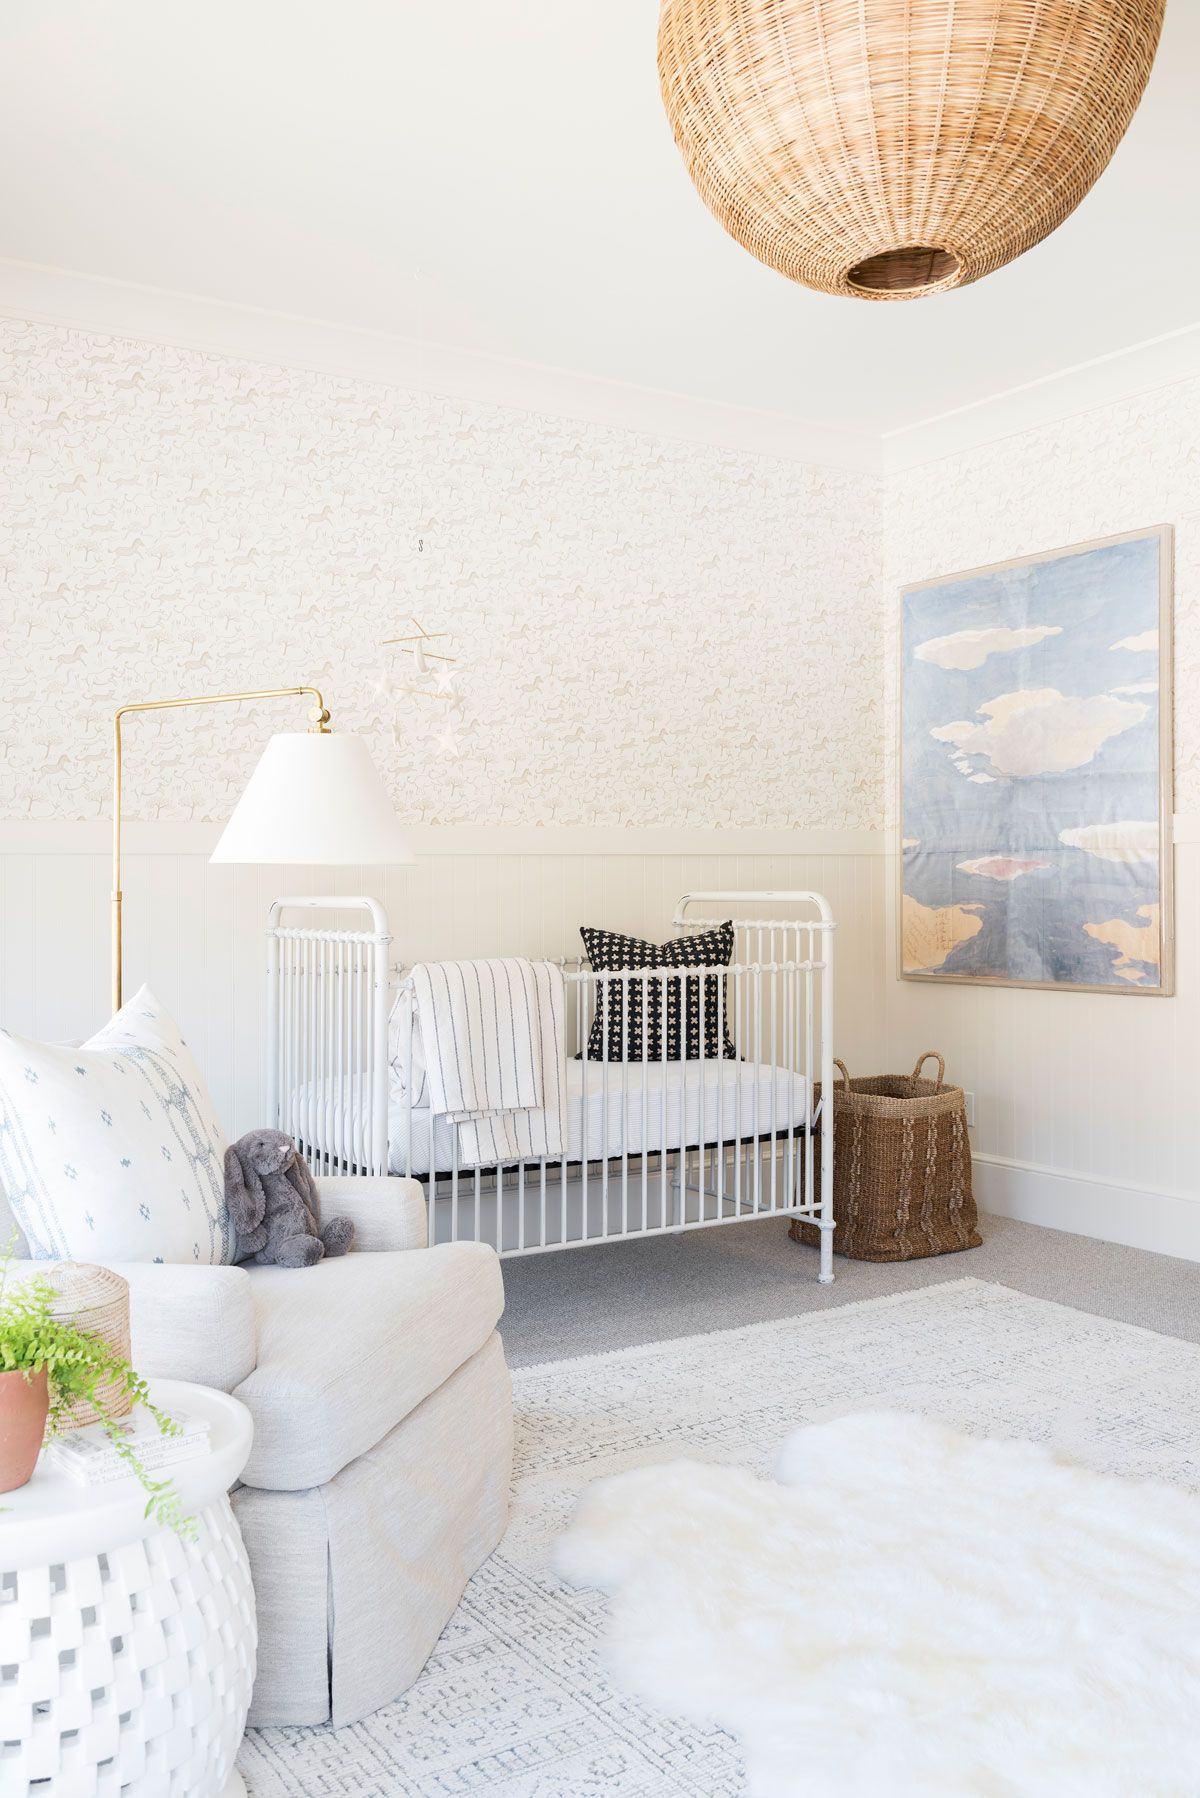 Cove Remodel : The Kids' Spaces images